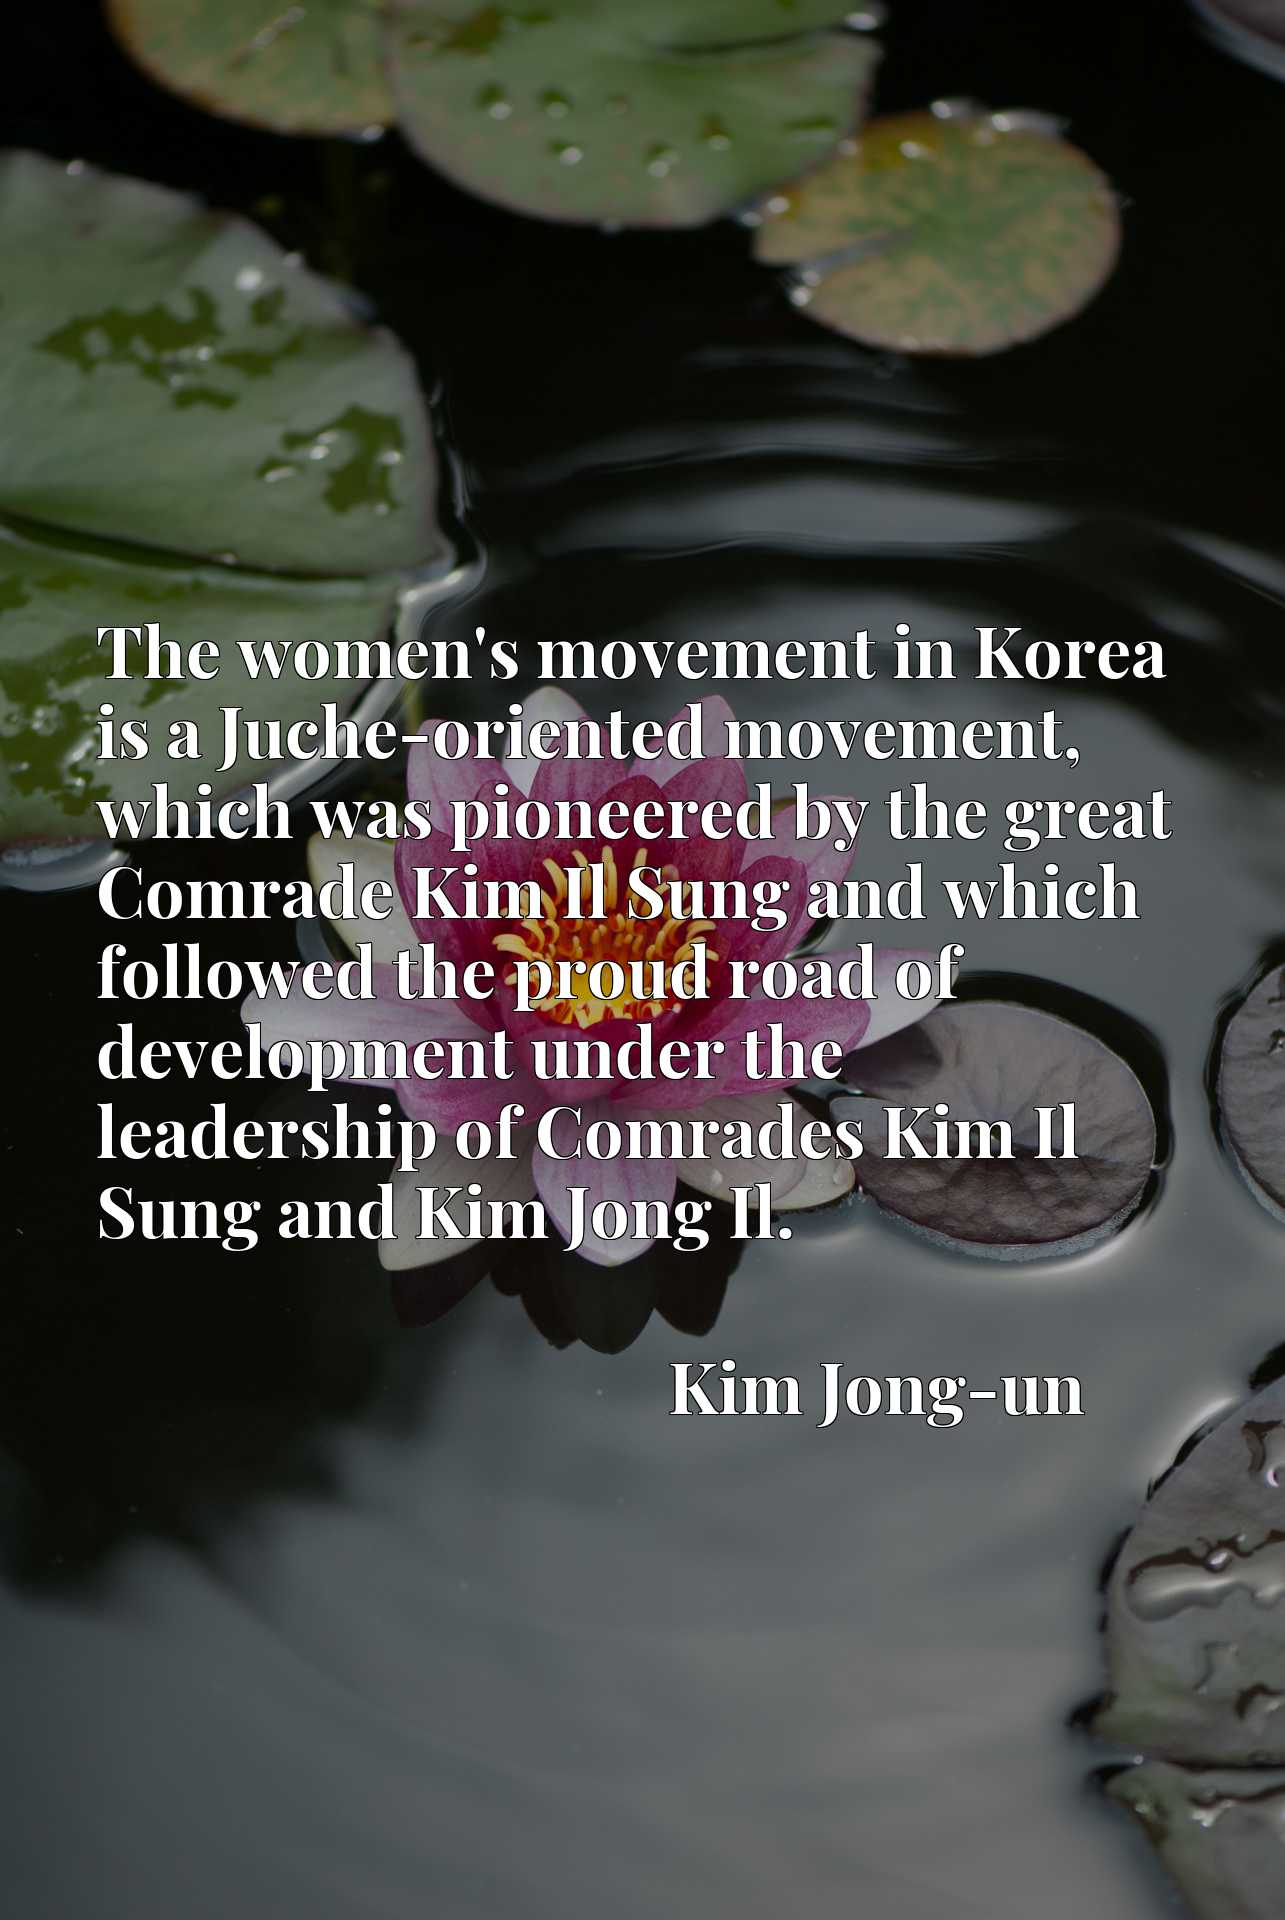 The women's movement in Korea is a Juche-oriented movement, which was pioneered by the great Comrade Kim Il Sung and which followed the proud road of development under the leadership of Comrades Kim Il Sung and Kim Jong Il.